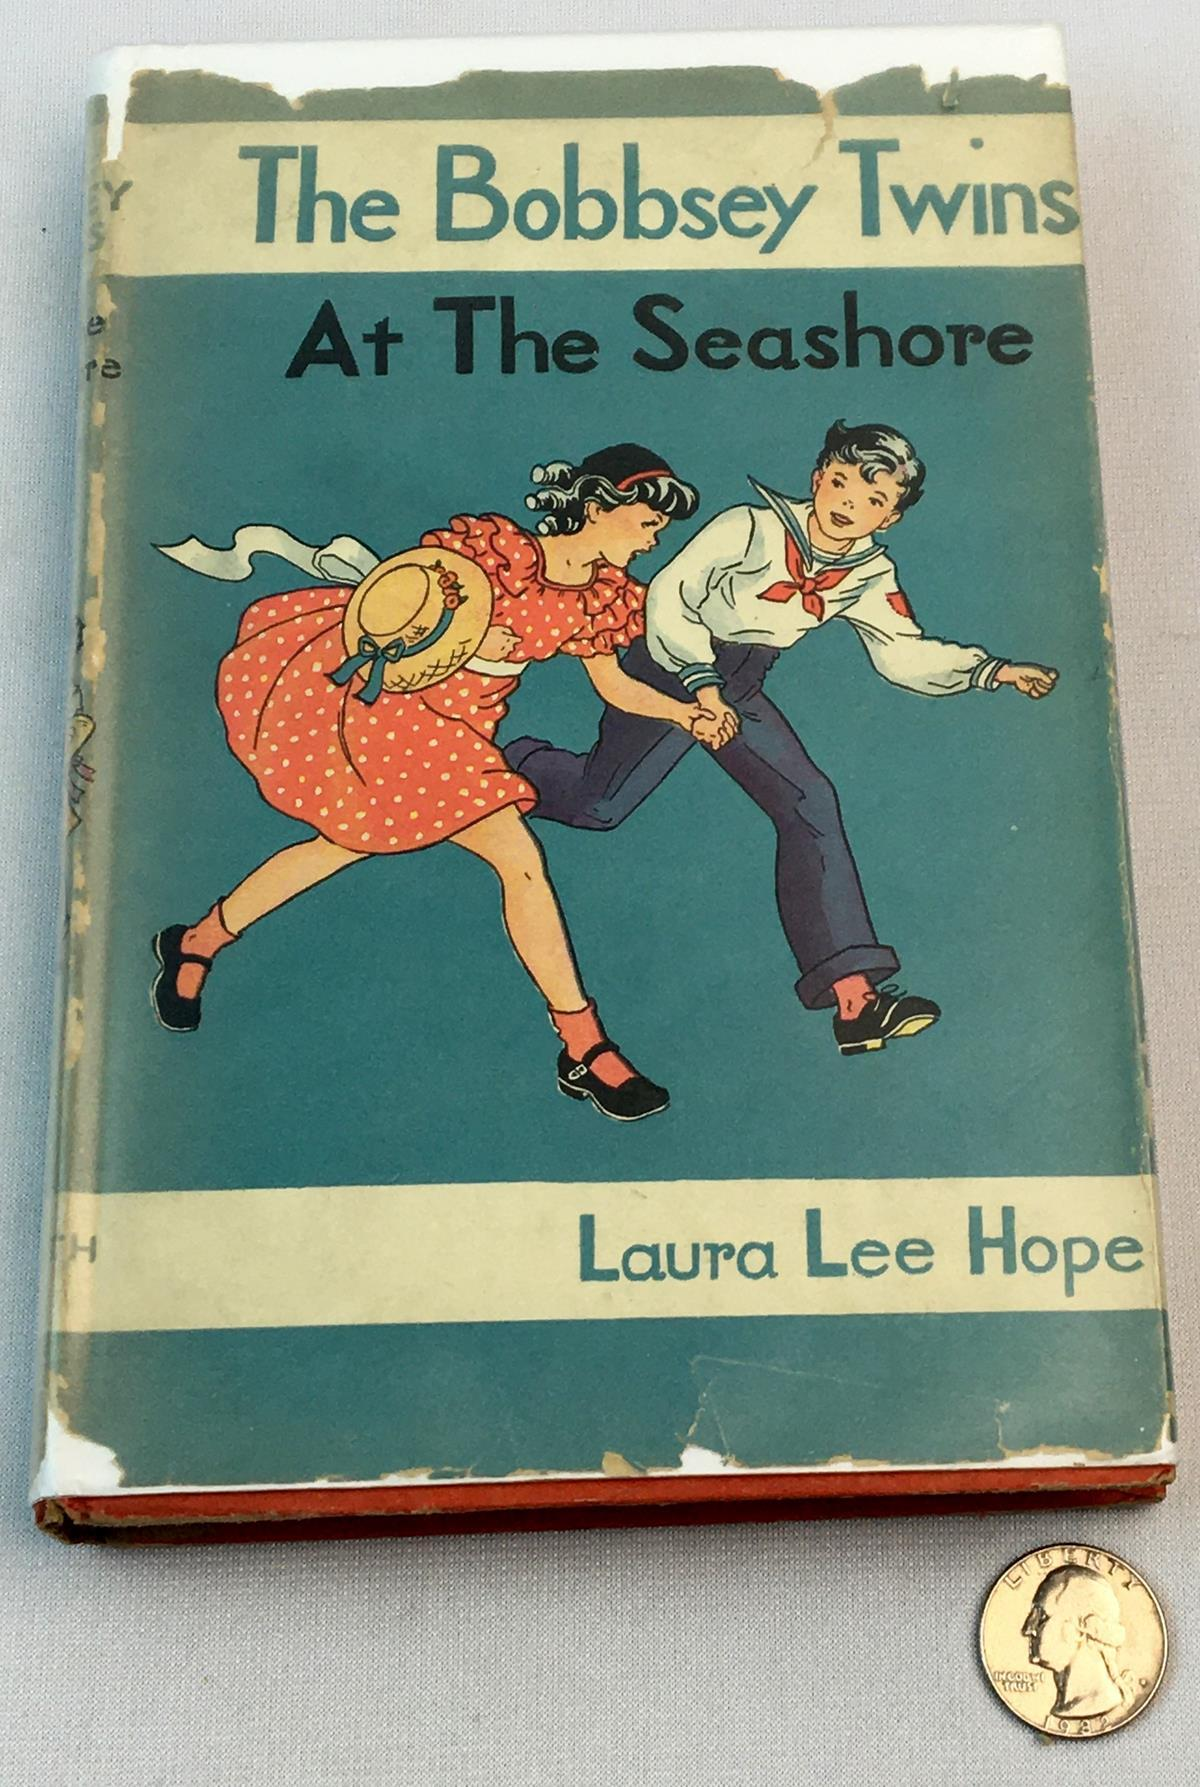 The Bobbsey Twins At The Seashore by Laura Lee Hope w/ Dust Jacket